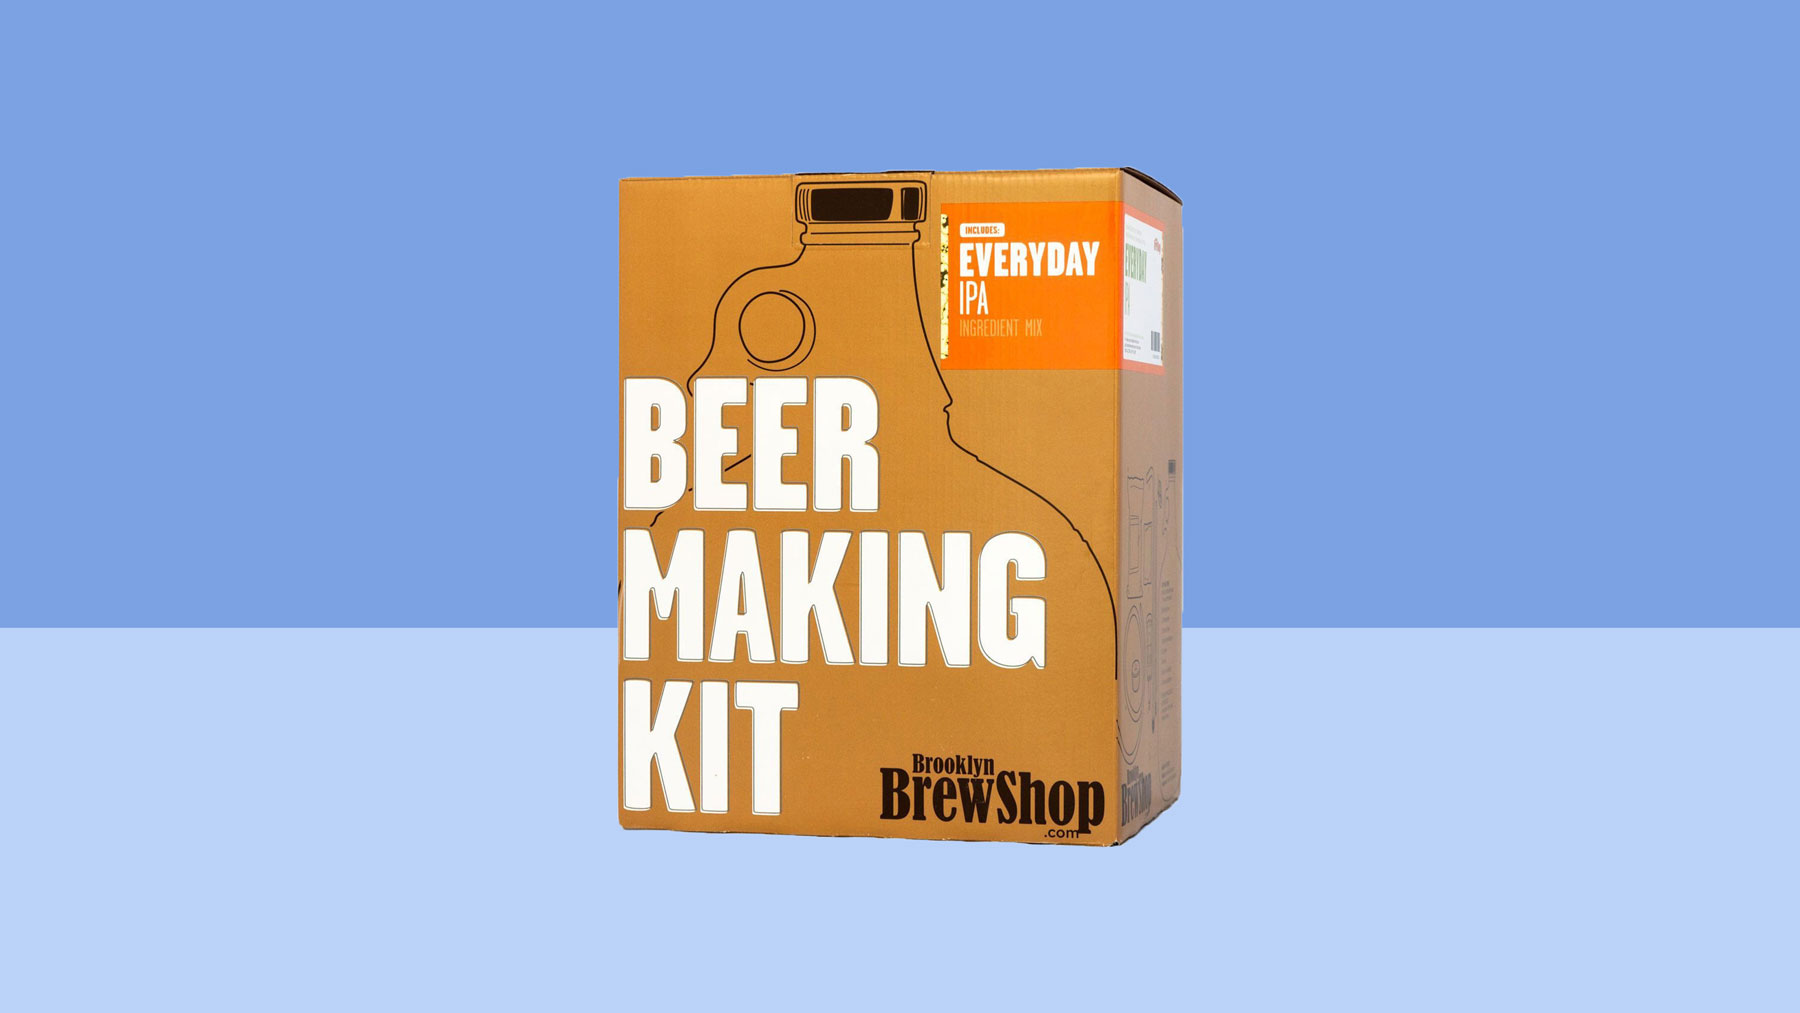 Father's Day gifts, ideas - IPA beer making kit